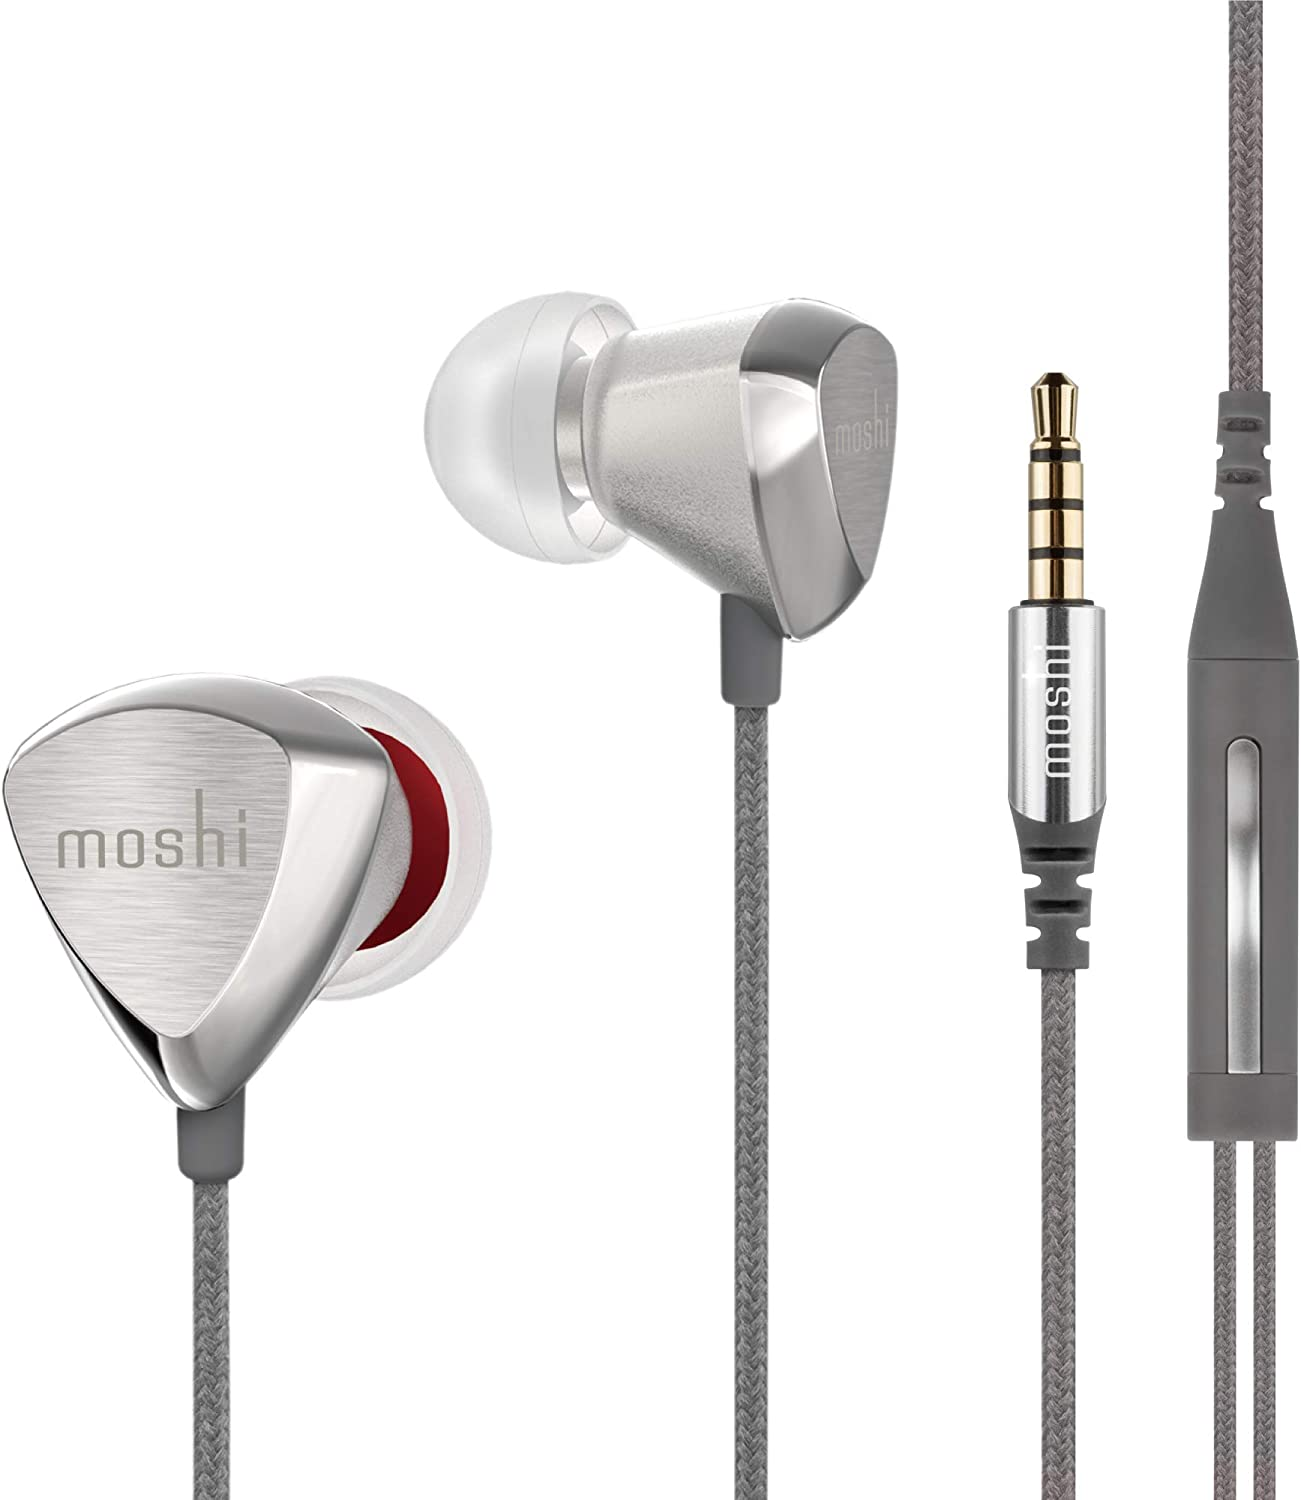 Moshi Vortex 2 Headphone with Microphone Noise-Isolation Hi-Fi XR8 for iPhone Android Phone, Push-Button Support for Siri and Google Assistant.